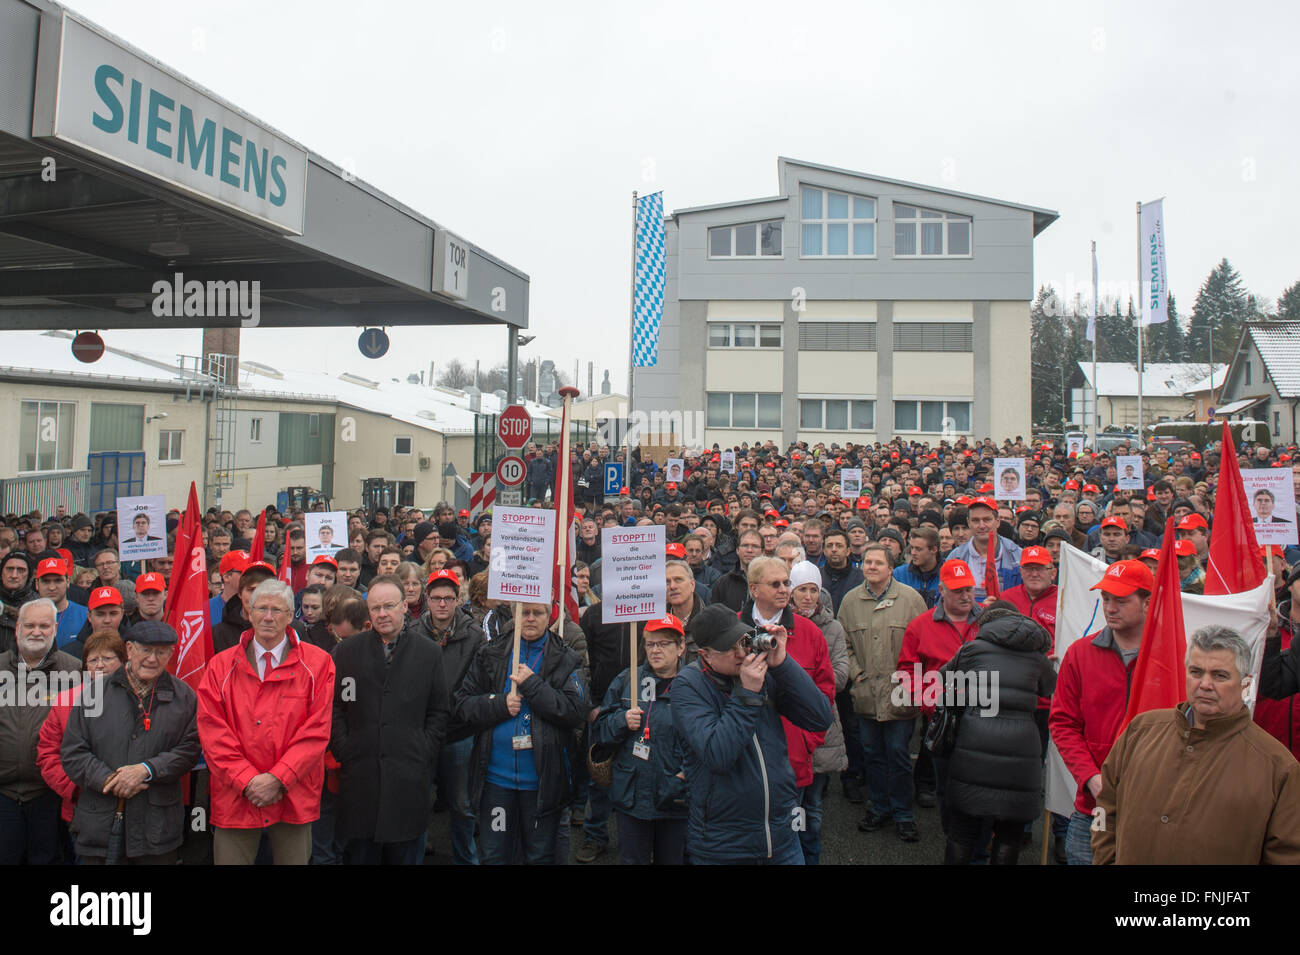 Ruhstorf, Germany  15th Mar, 2016  Siemens employees attend a rally